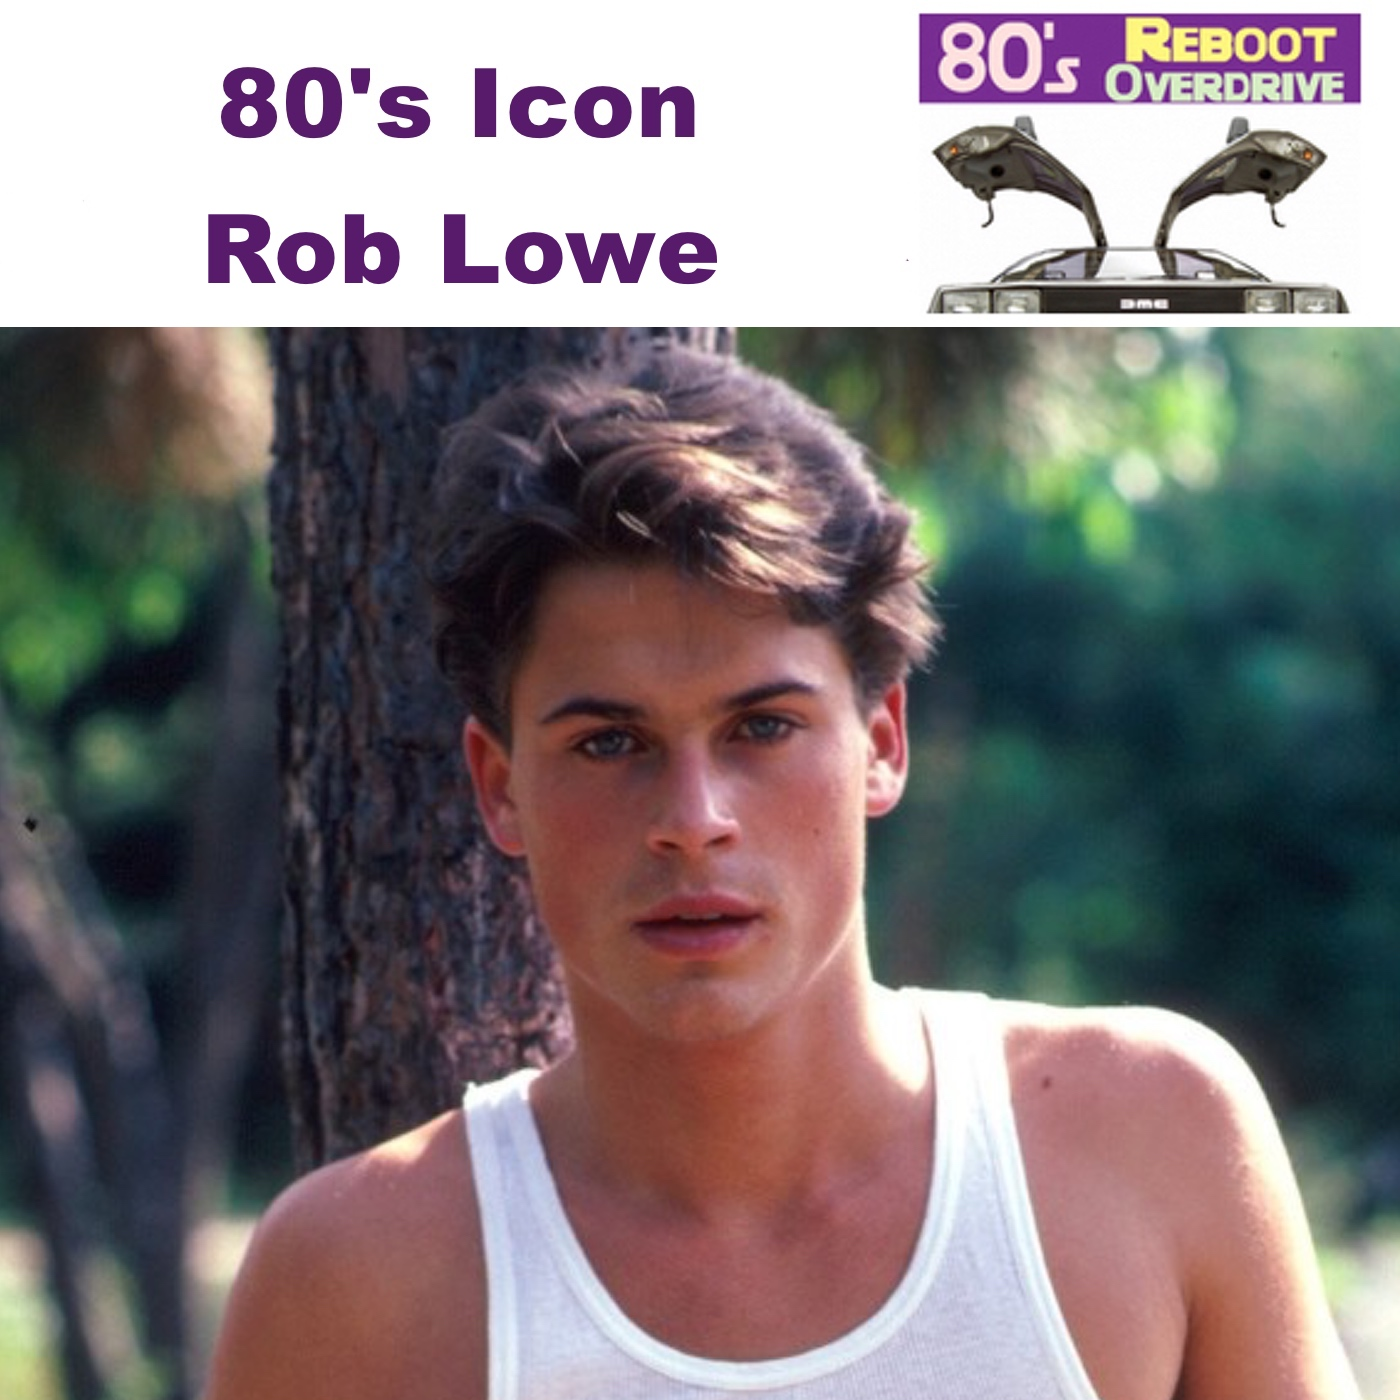 80's Icon Rob Lowe